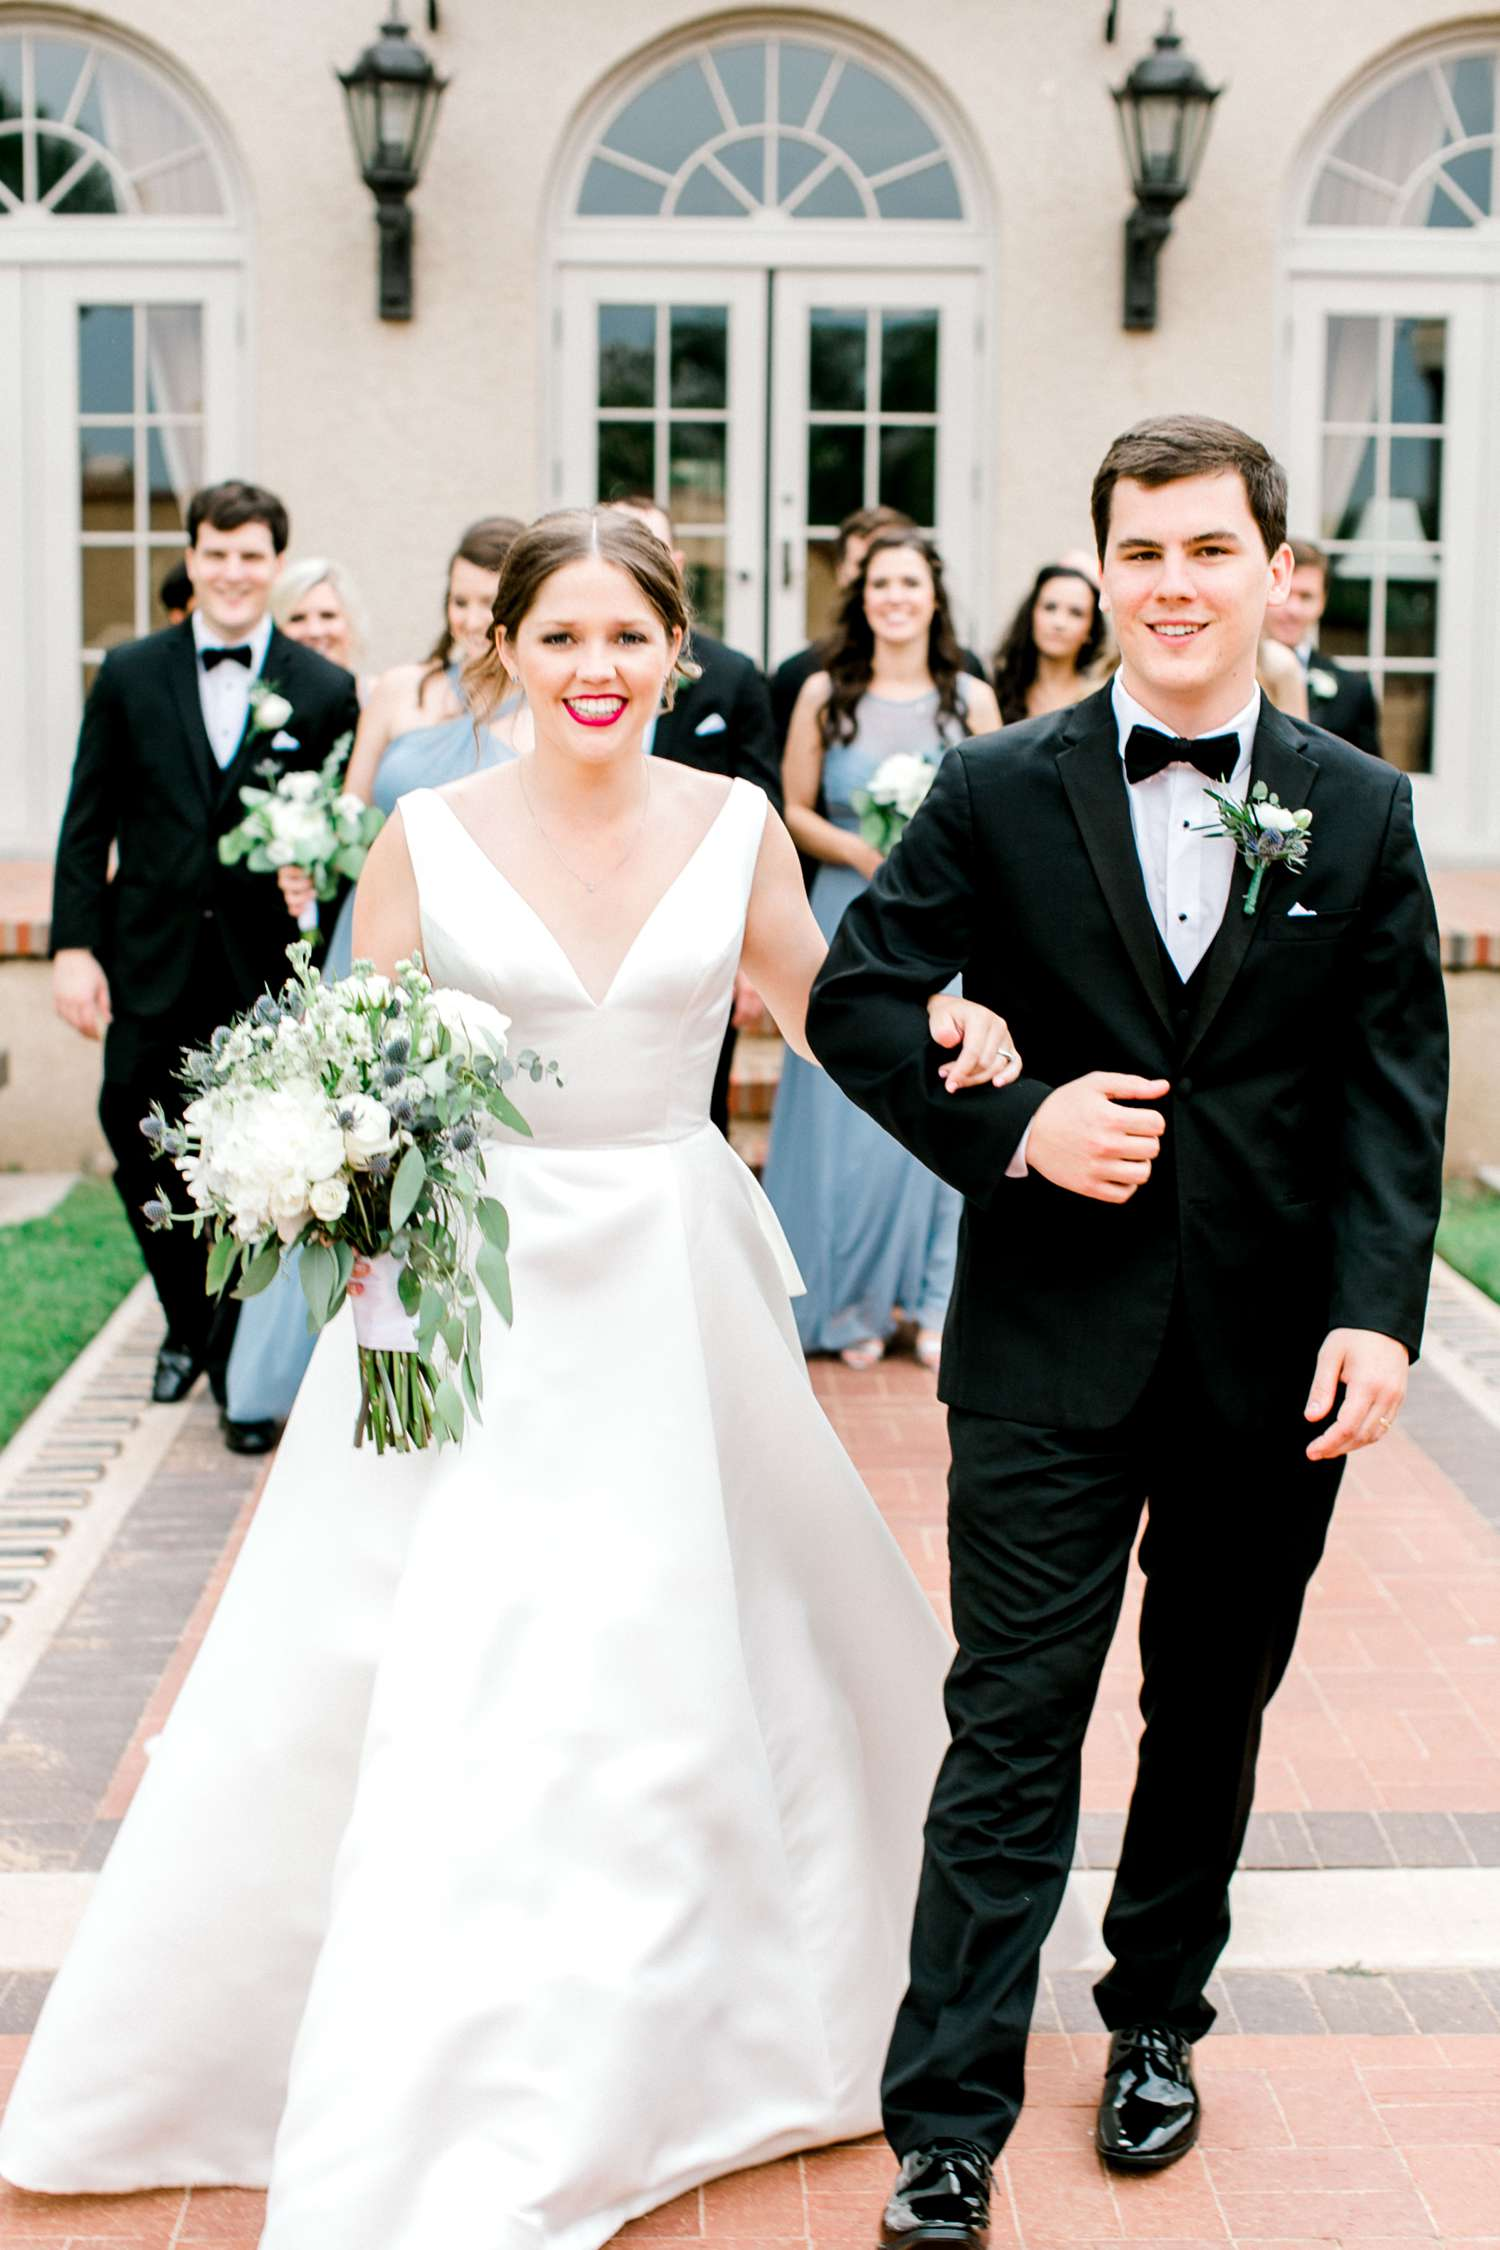 HANNAH+CRAIG+CHILDS+TEXAS+TECH+WEDDING+ALLEEJ+LUBBOCK+PHOTOGRAPHER_0111.jpg